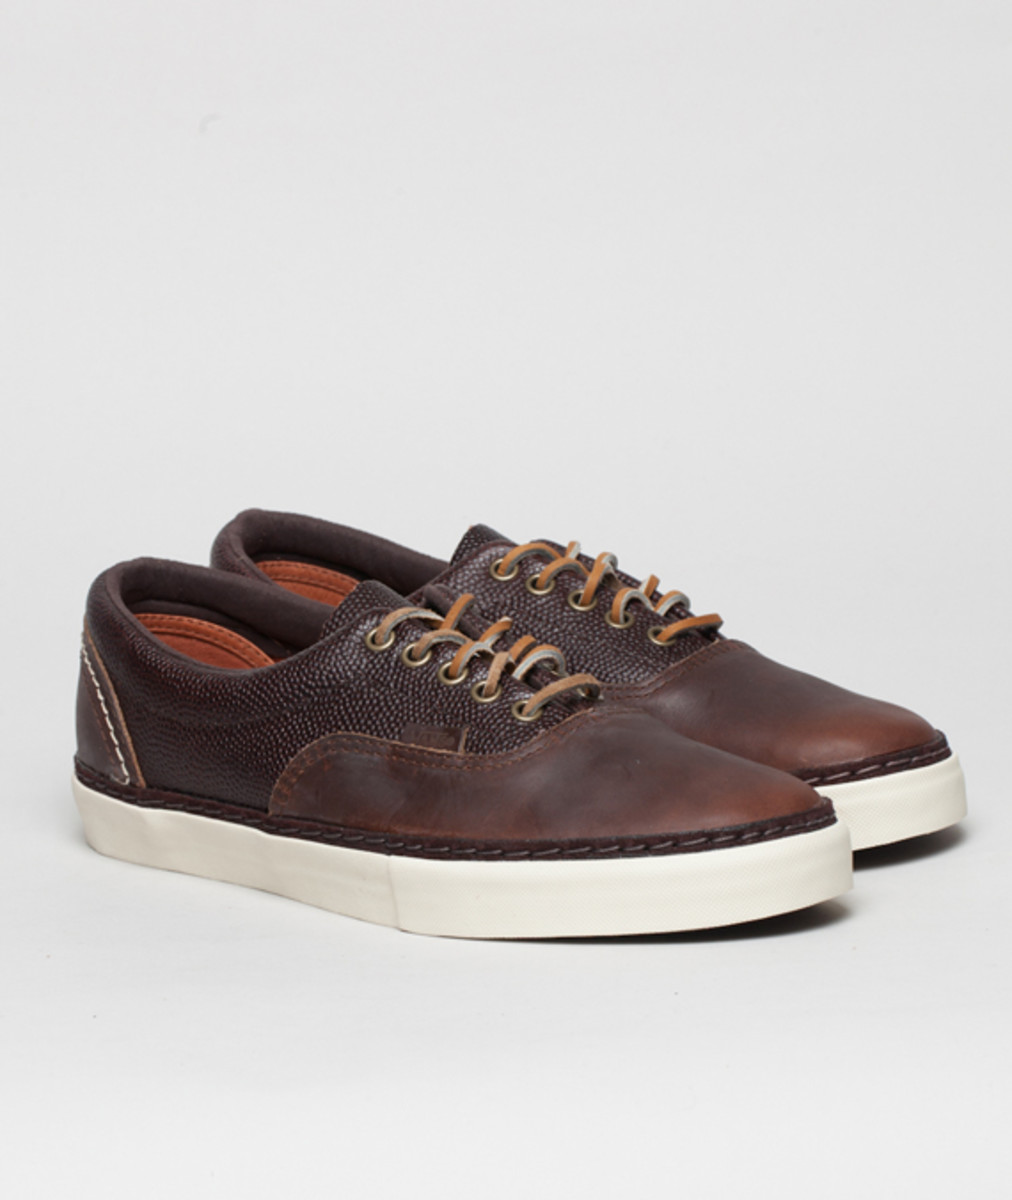 horween-leather-vans-era-hw-lx-01